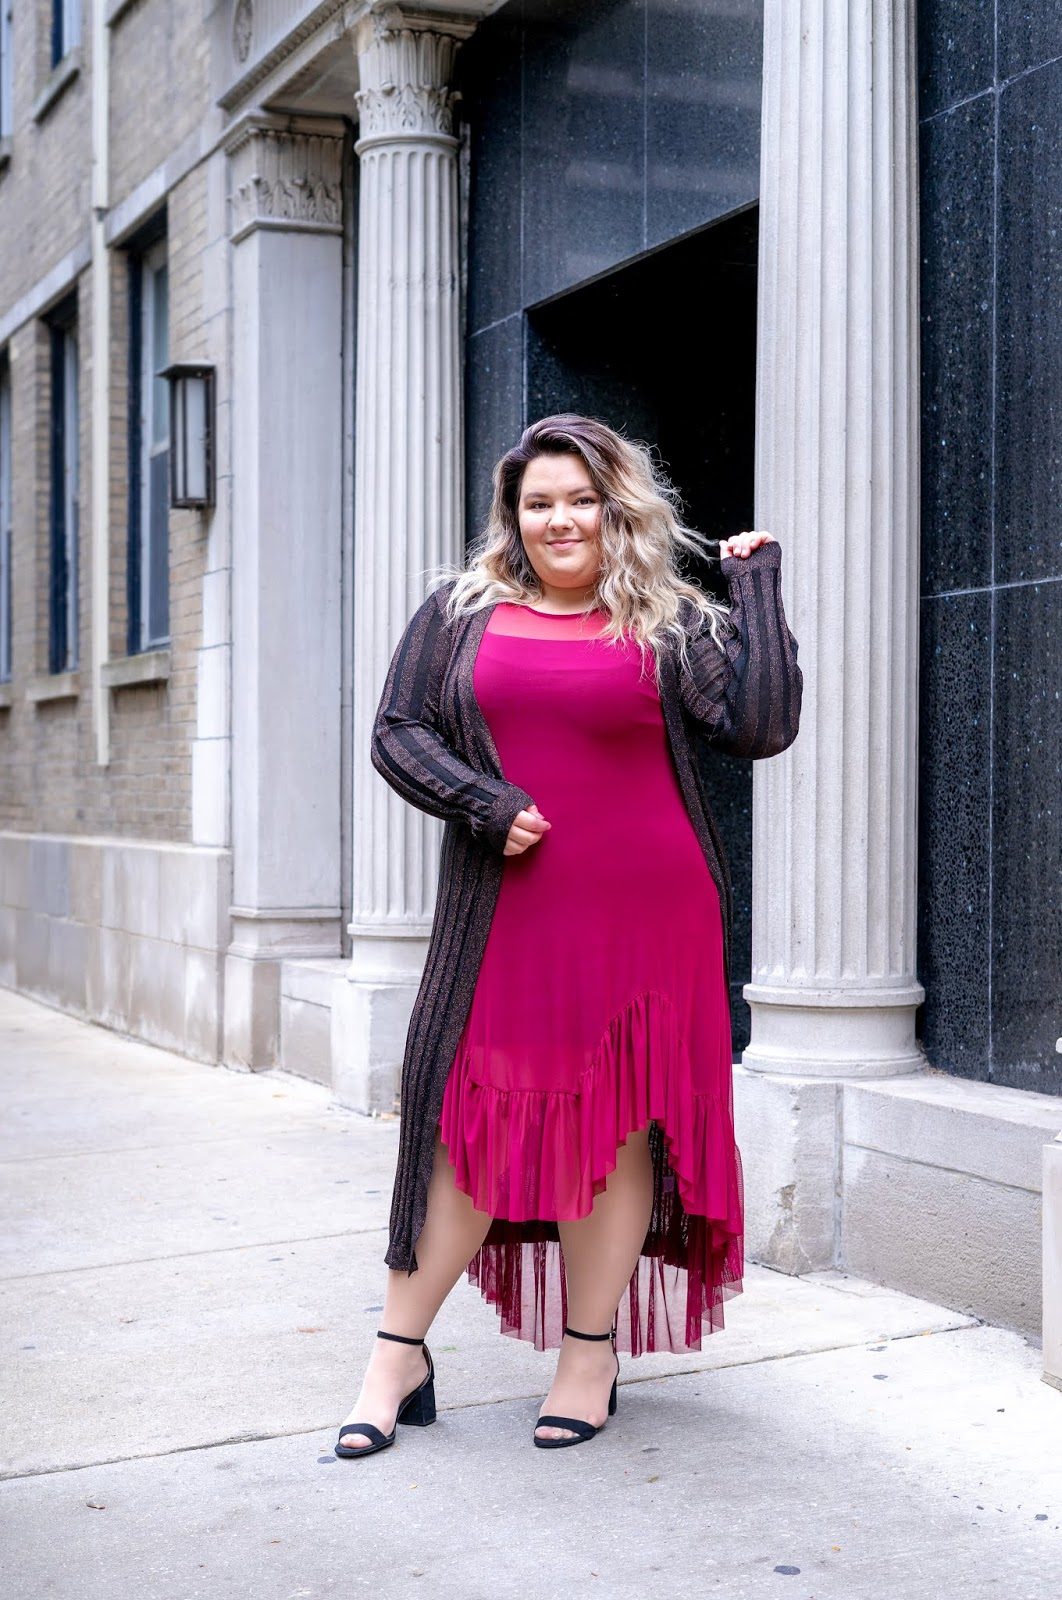 Chicago fashion blogger, Chicago plus size fashion blogger, natalie Craig, natalie in the city, plus size fashion, Chicago fashion, plus size fashion blogger, eff your beauty standards, fatshion, skorch magazine, Chicago model, plus size model, plus size petite, affordable plus size clothing, embrace your curves, plus model magazine,  petite plus size, body positive, fall fashion 2018, fashion nova curve, fashion nova, plus size dresses, ruffle dresses, high low dresses, wide width block heels